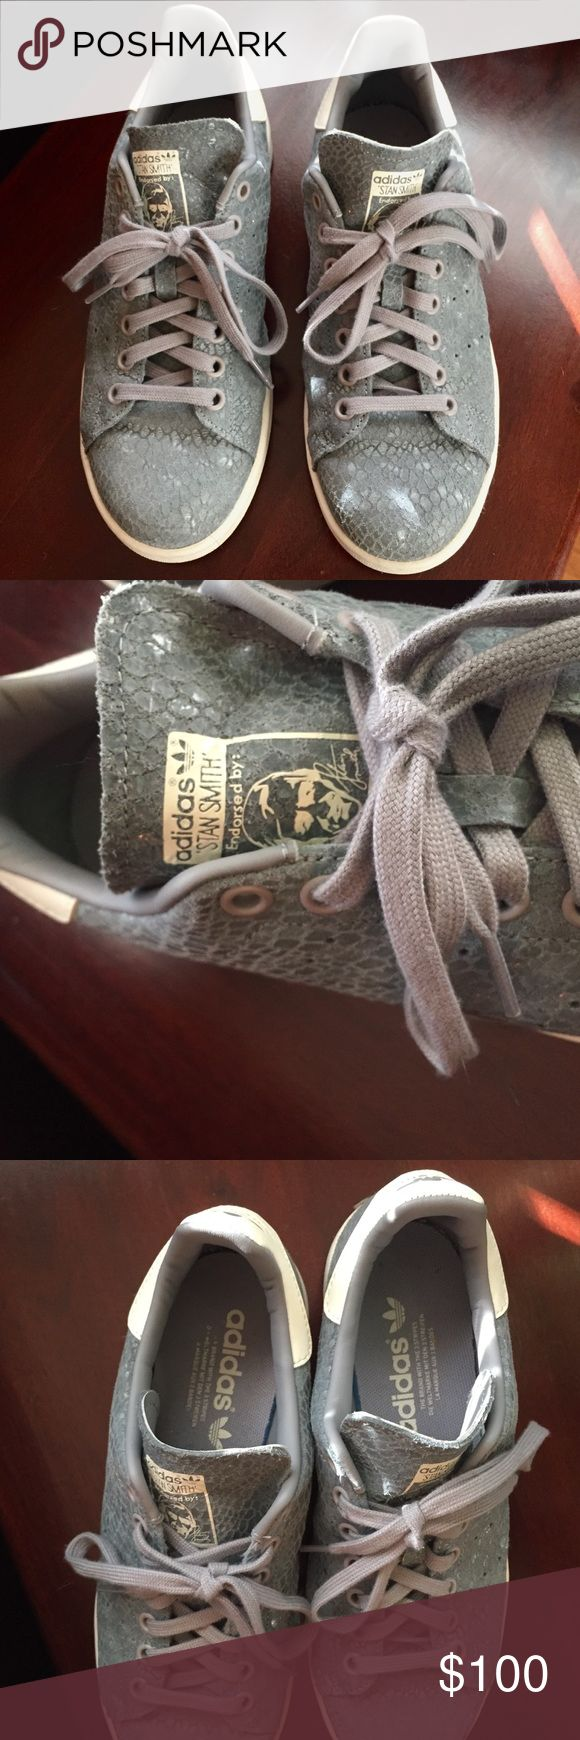 Snake skin Stan Smith limited edition Adidas These sneakers are in amazing condition• women's size 7.5 but can fit an 8• worn once • super cute but don't fit me •bundle with other items in my closet to get the best deal!!! Shoes Sneakers